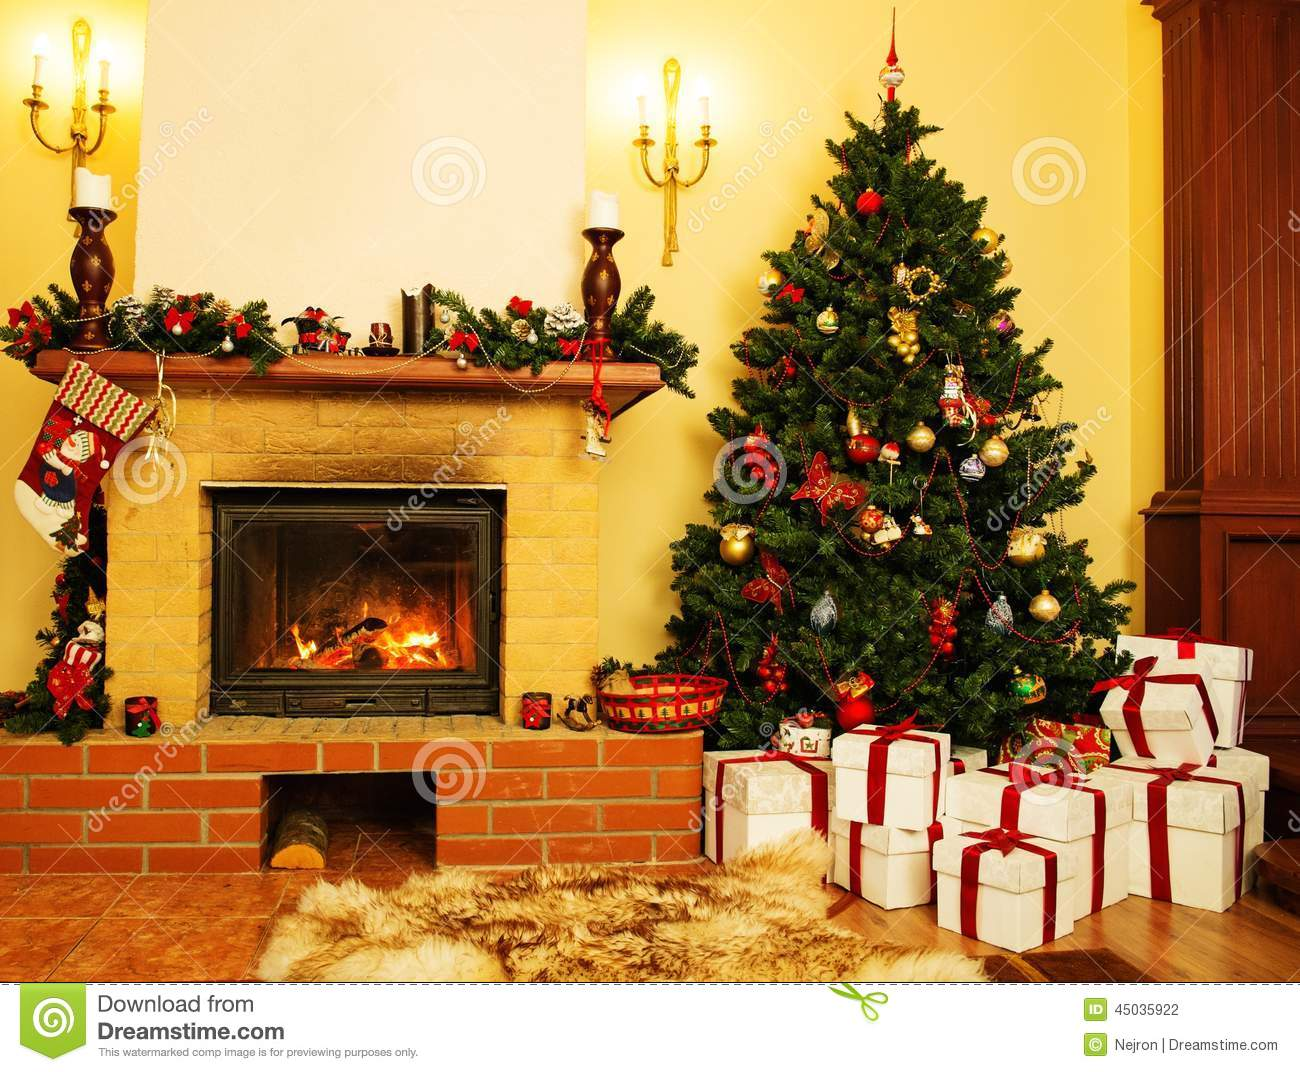 No l a d cor l 39 int rieur de maison photo stock image for Decoration interieur de noel